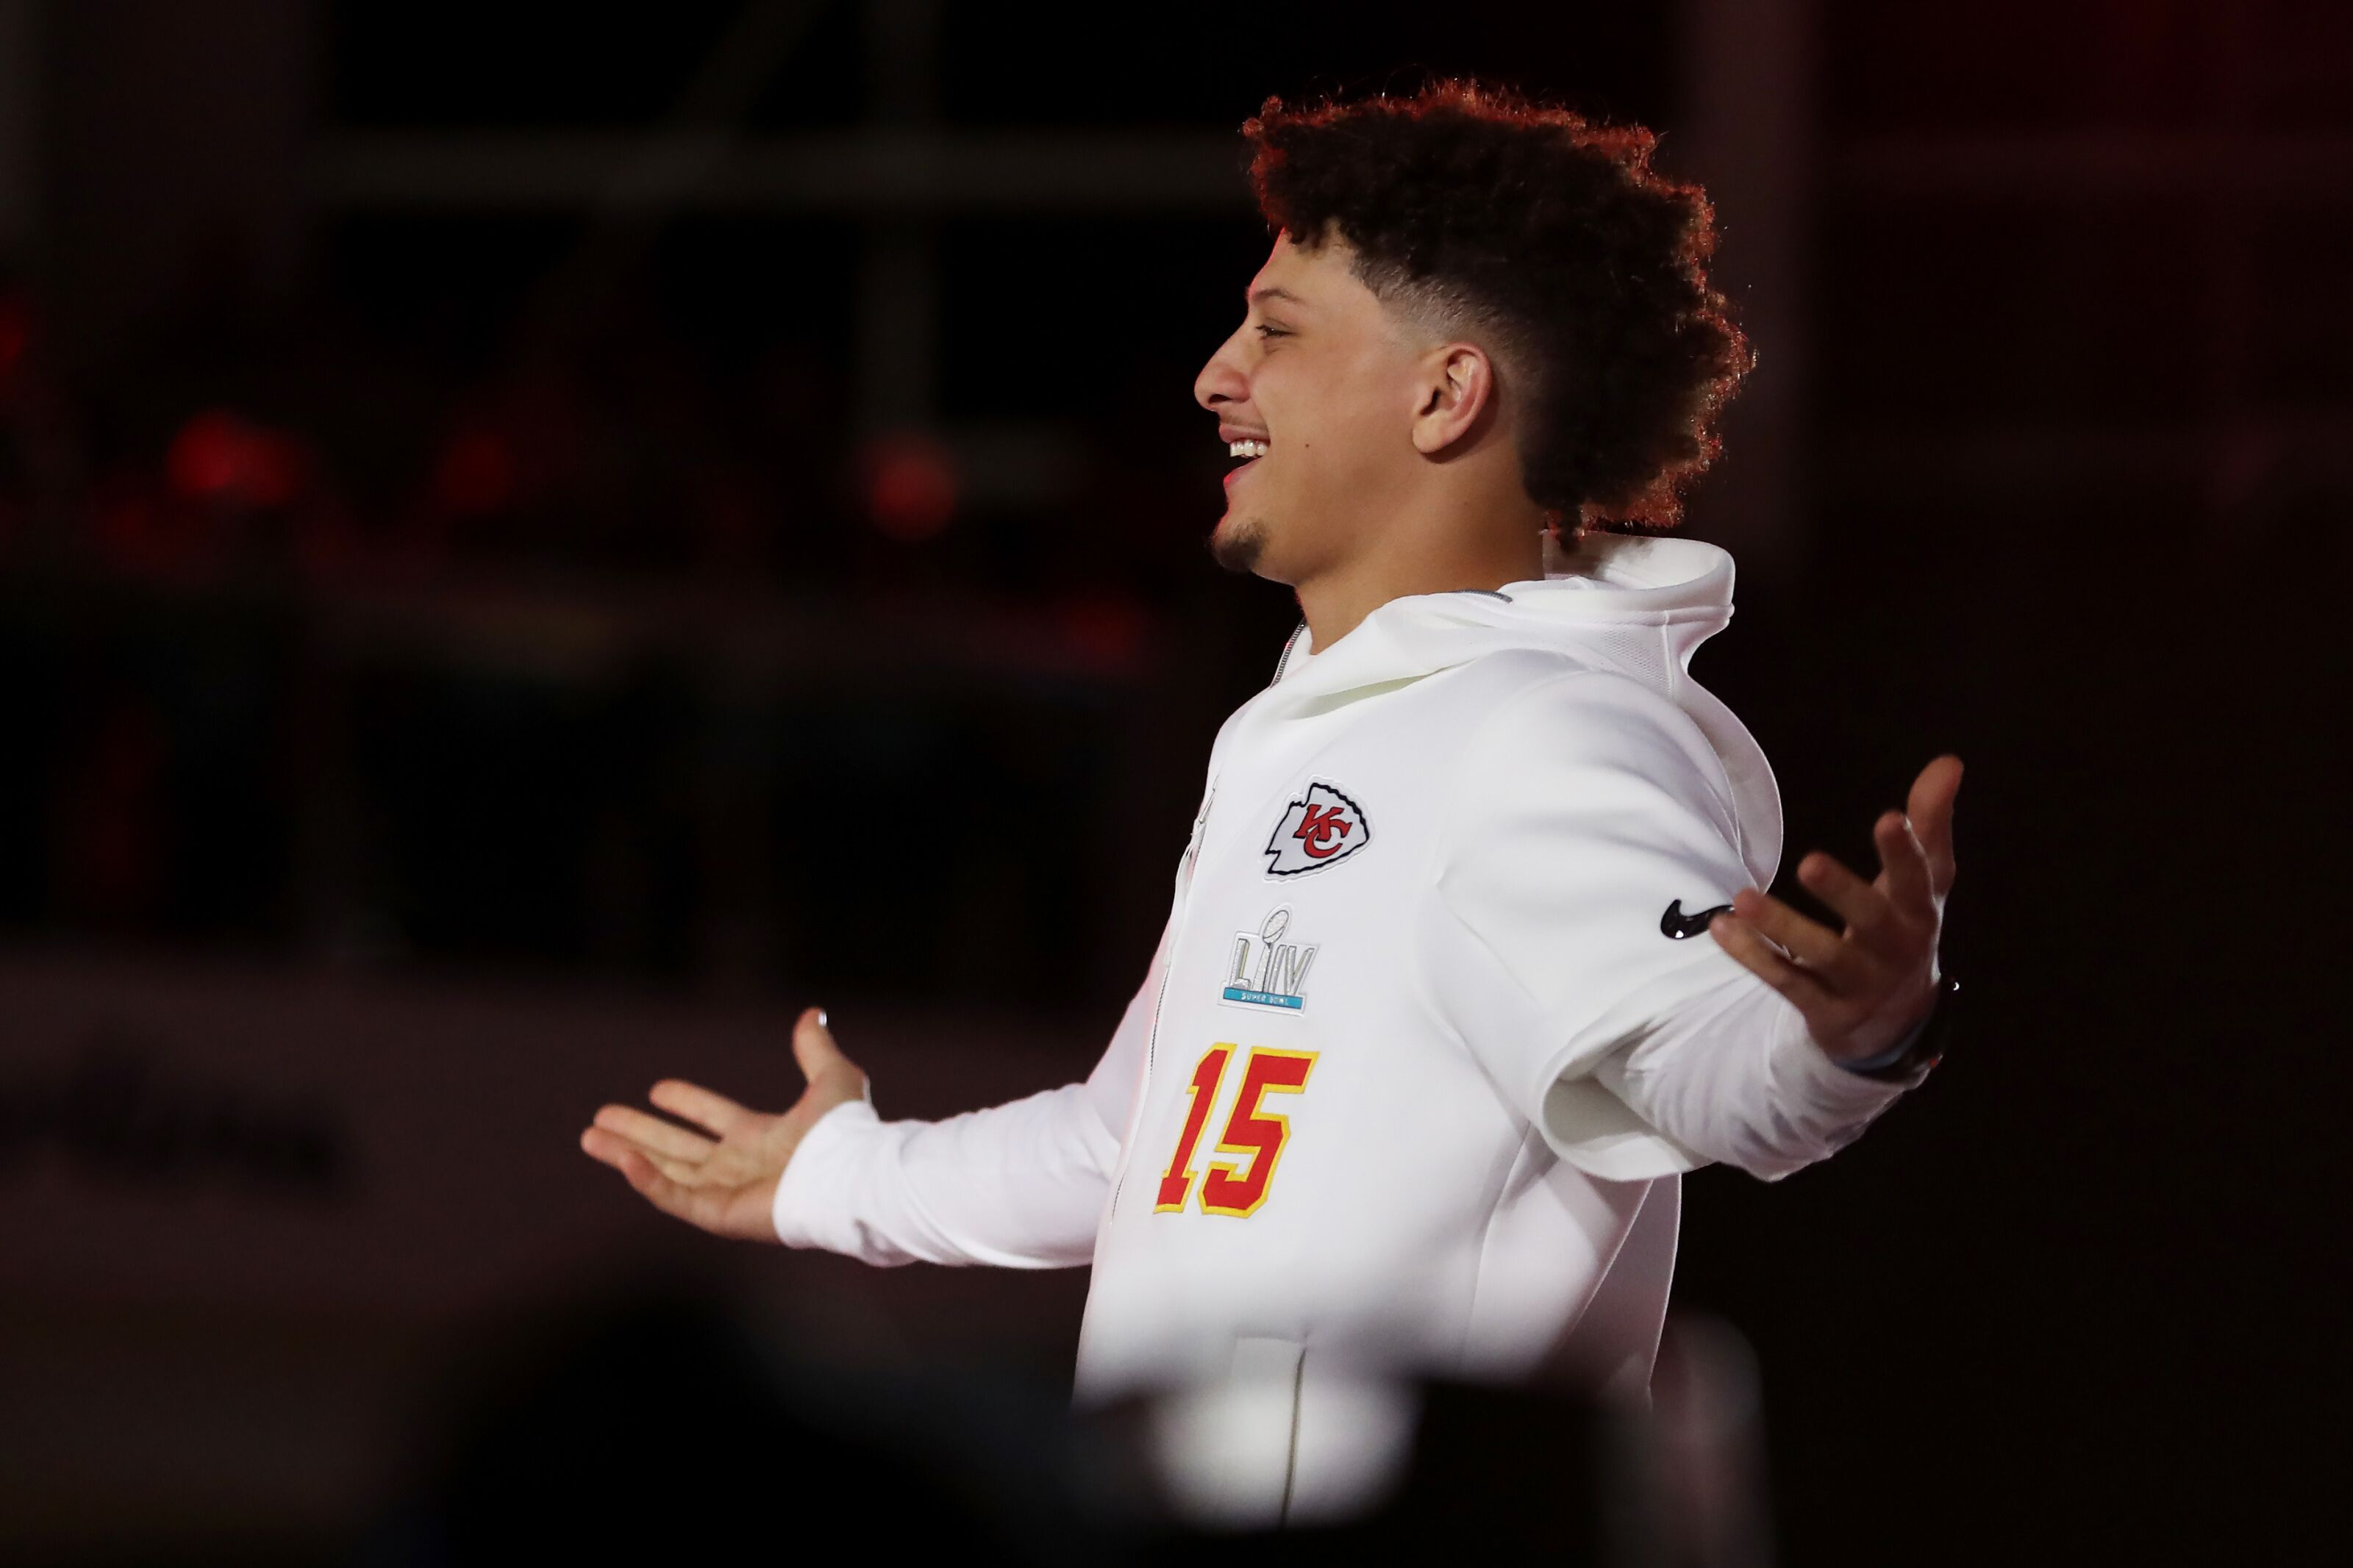 Recalling how the Chiefs threaded the needle to get Patrick Mahomes